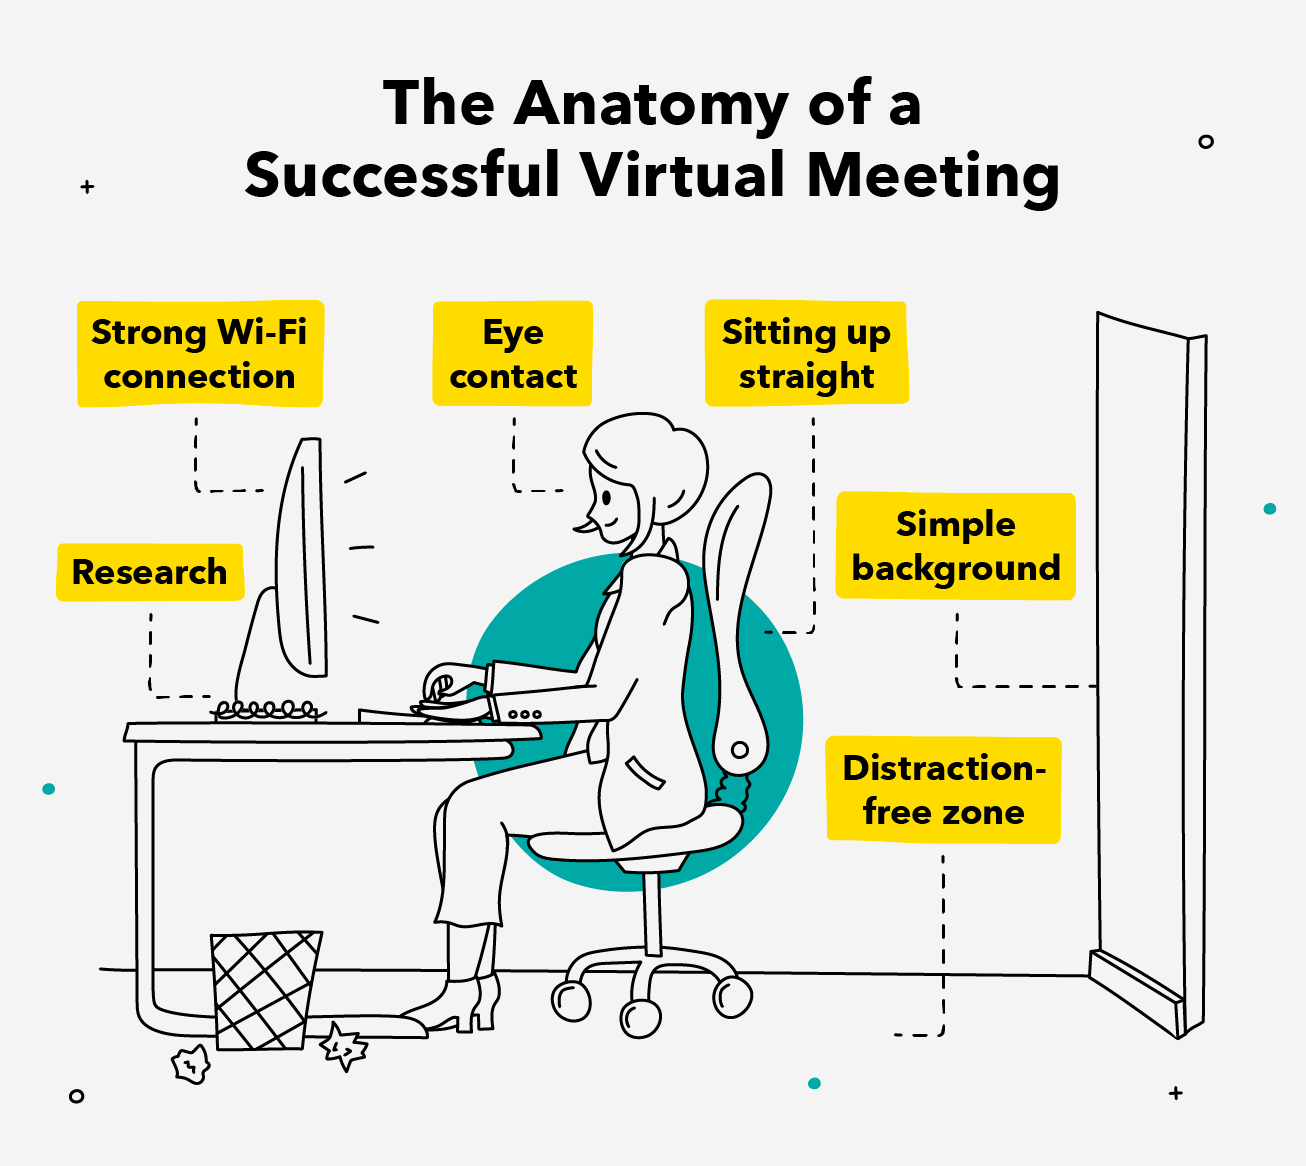 The Anatomy of a Successful Virtual Meeting